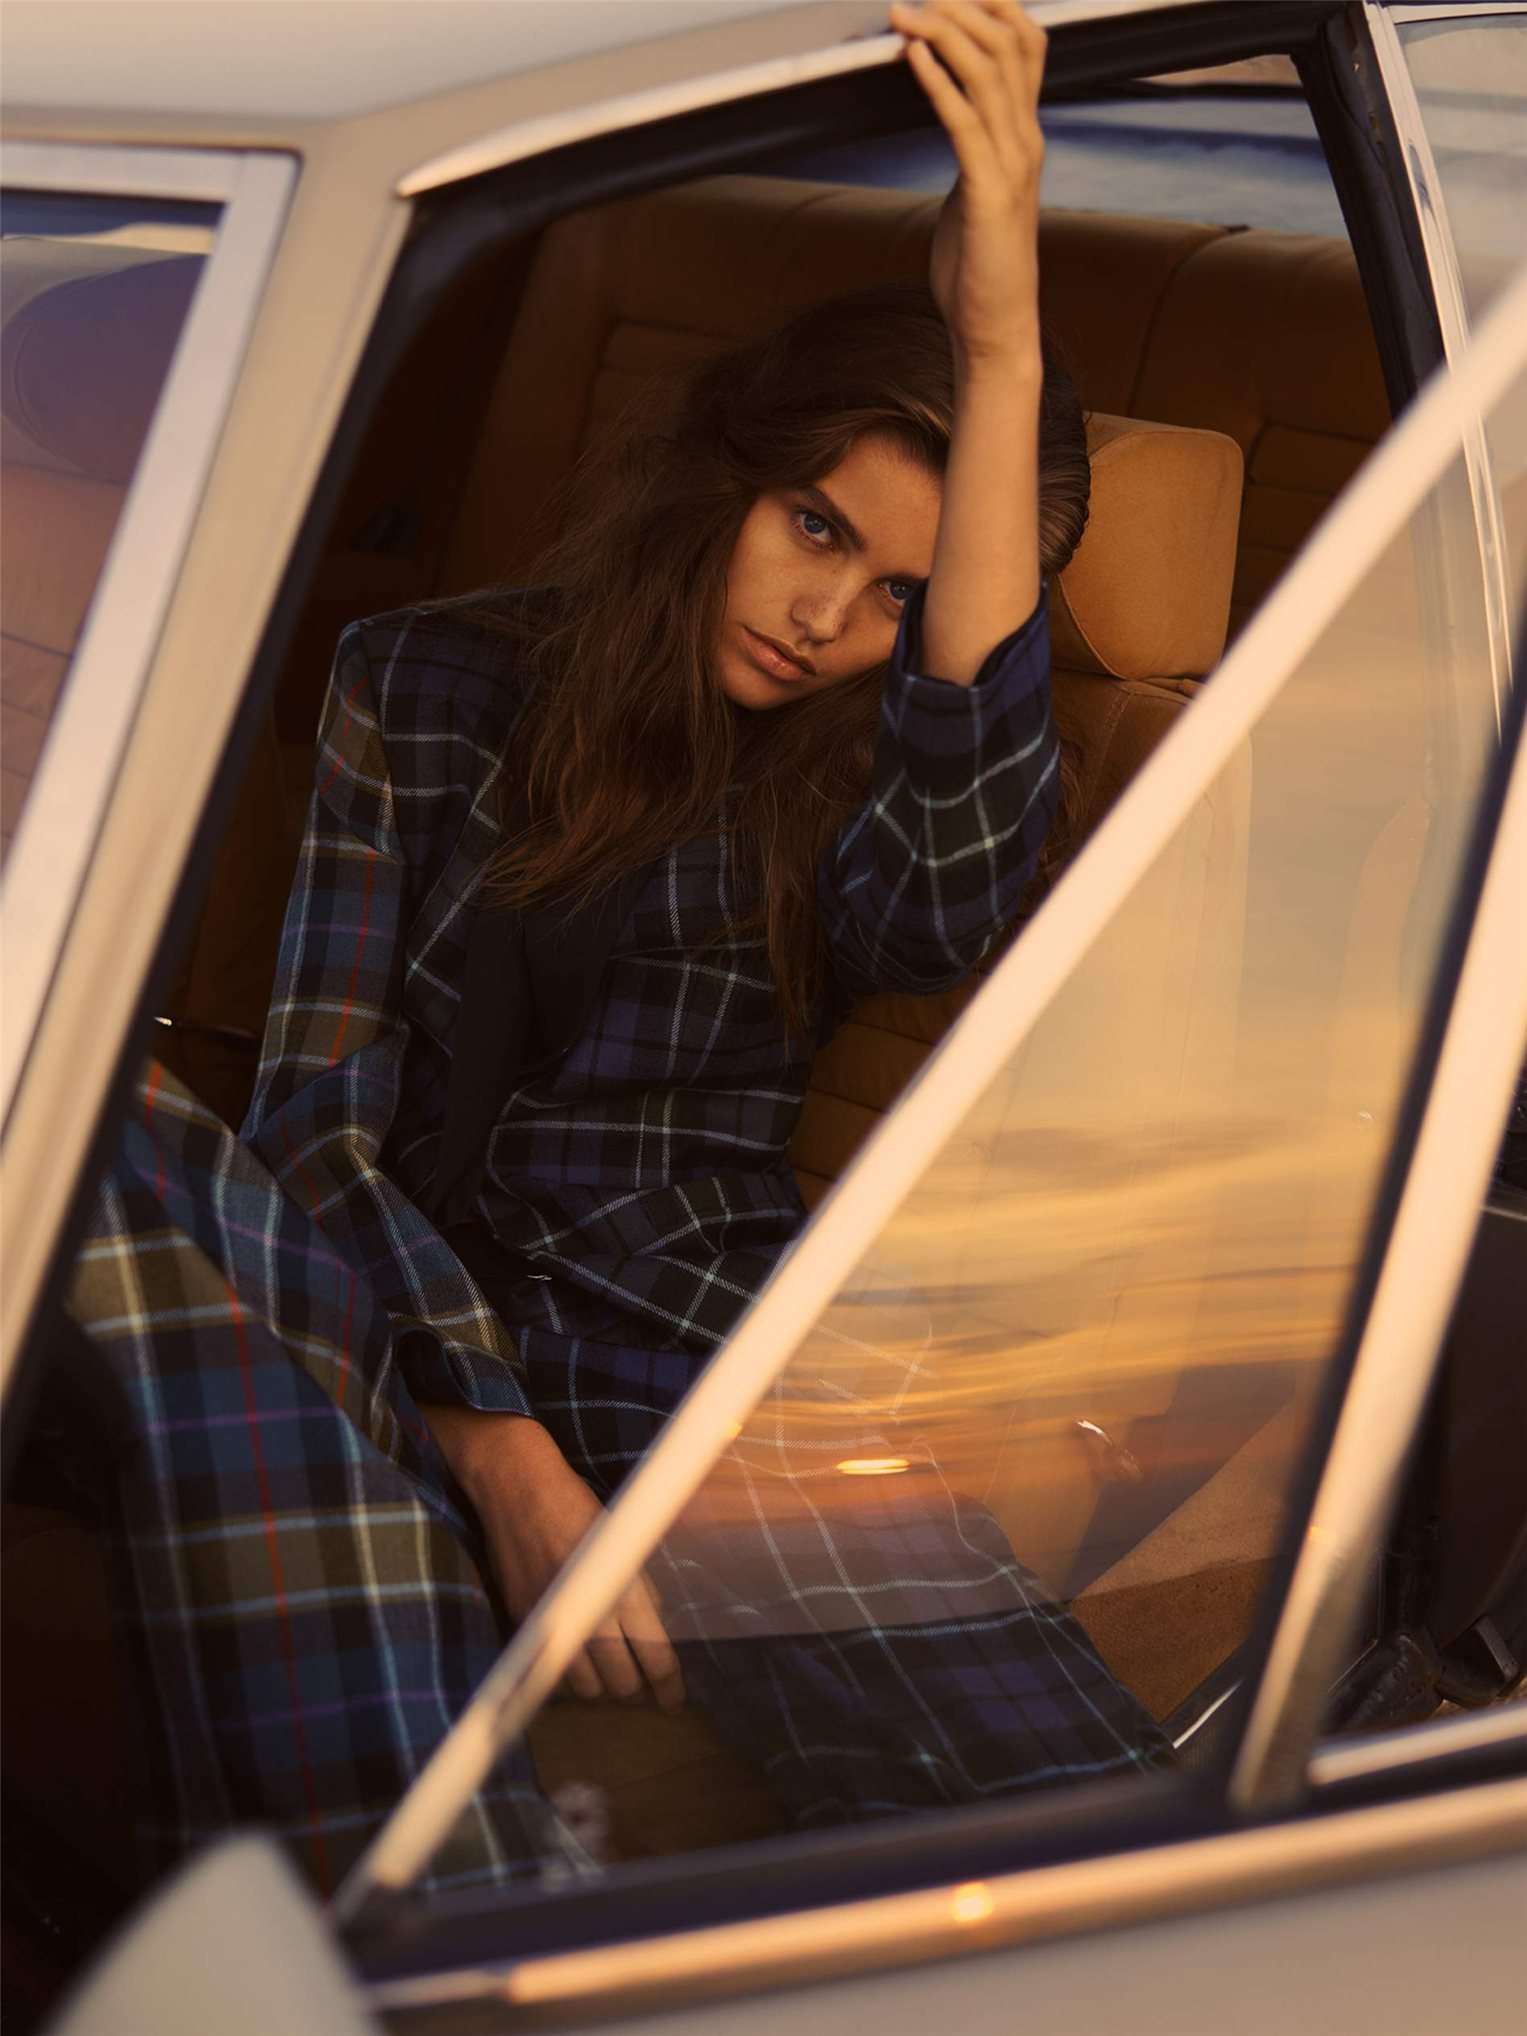 Square Roots / Luna Bijl by Rory Payne - The Edit by Net-A-Porter august 2018